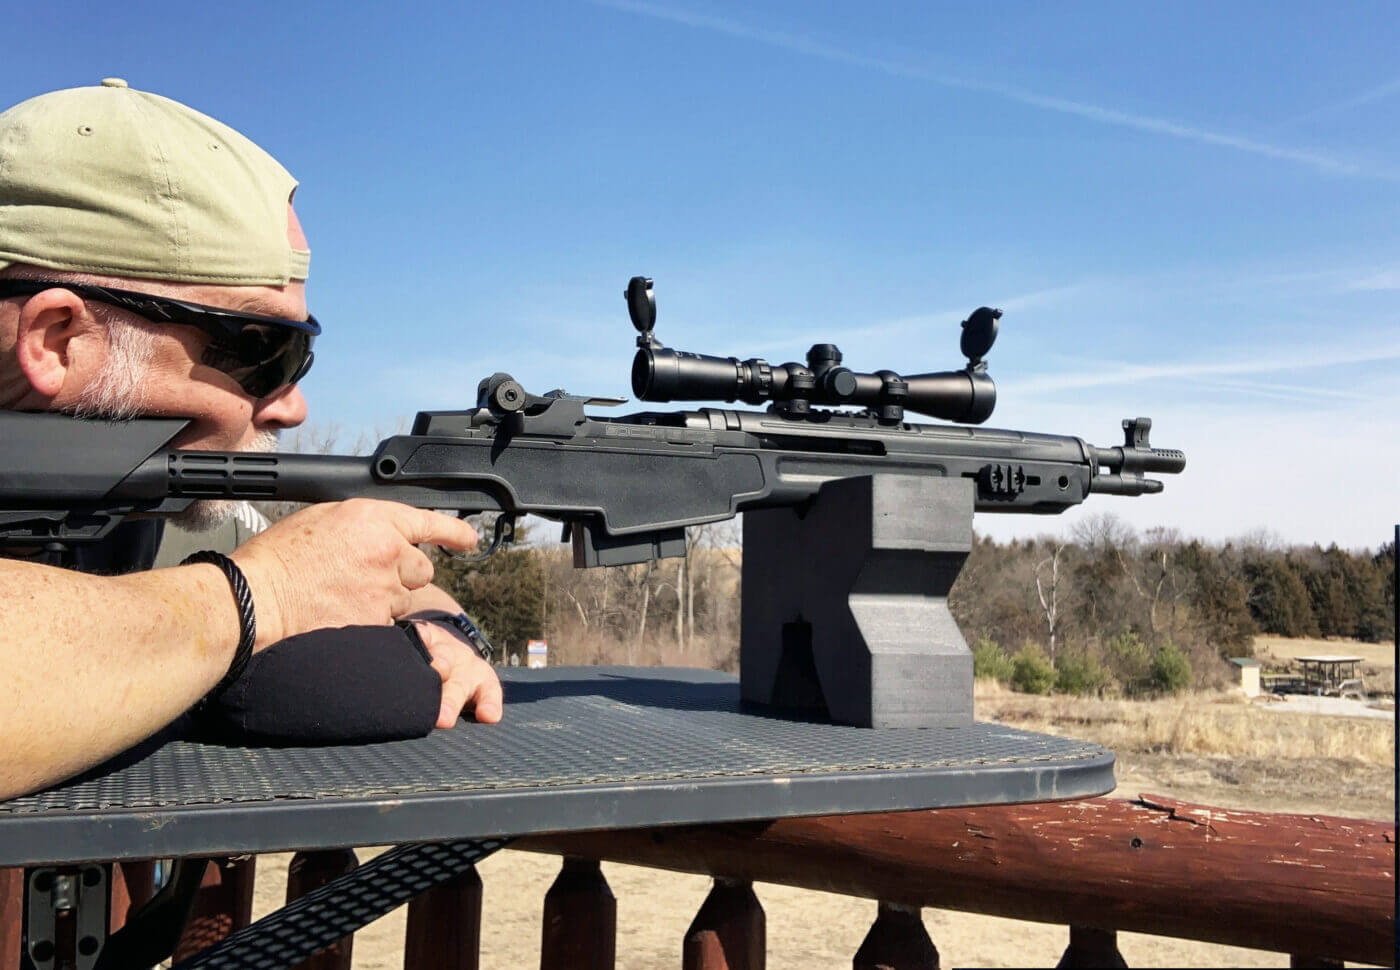 Man shooting rifle with scout scope on M1A SOCOM 16 CQB rifle